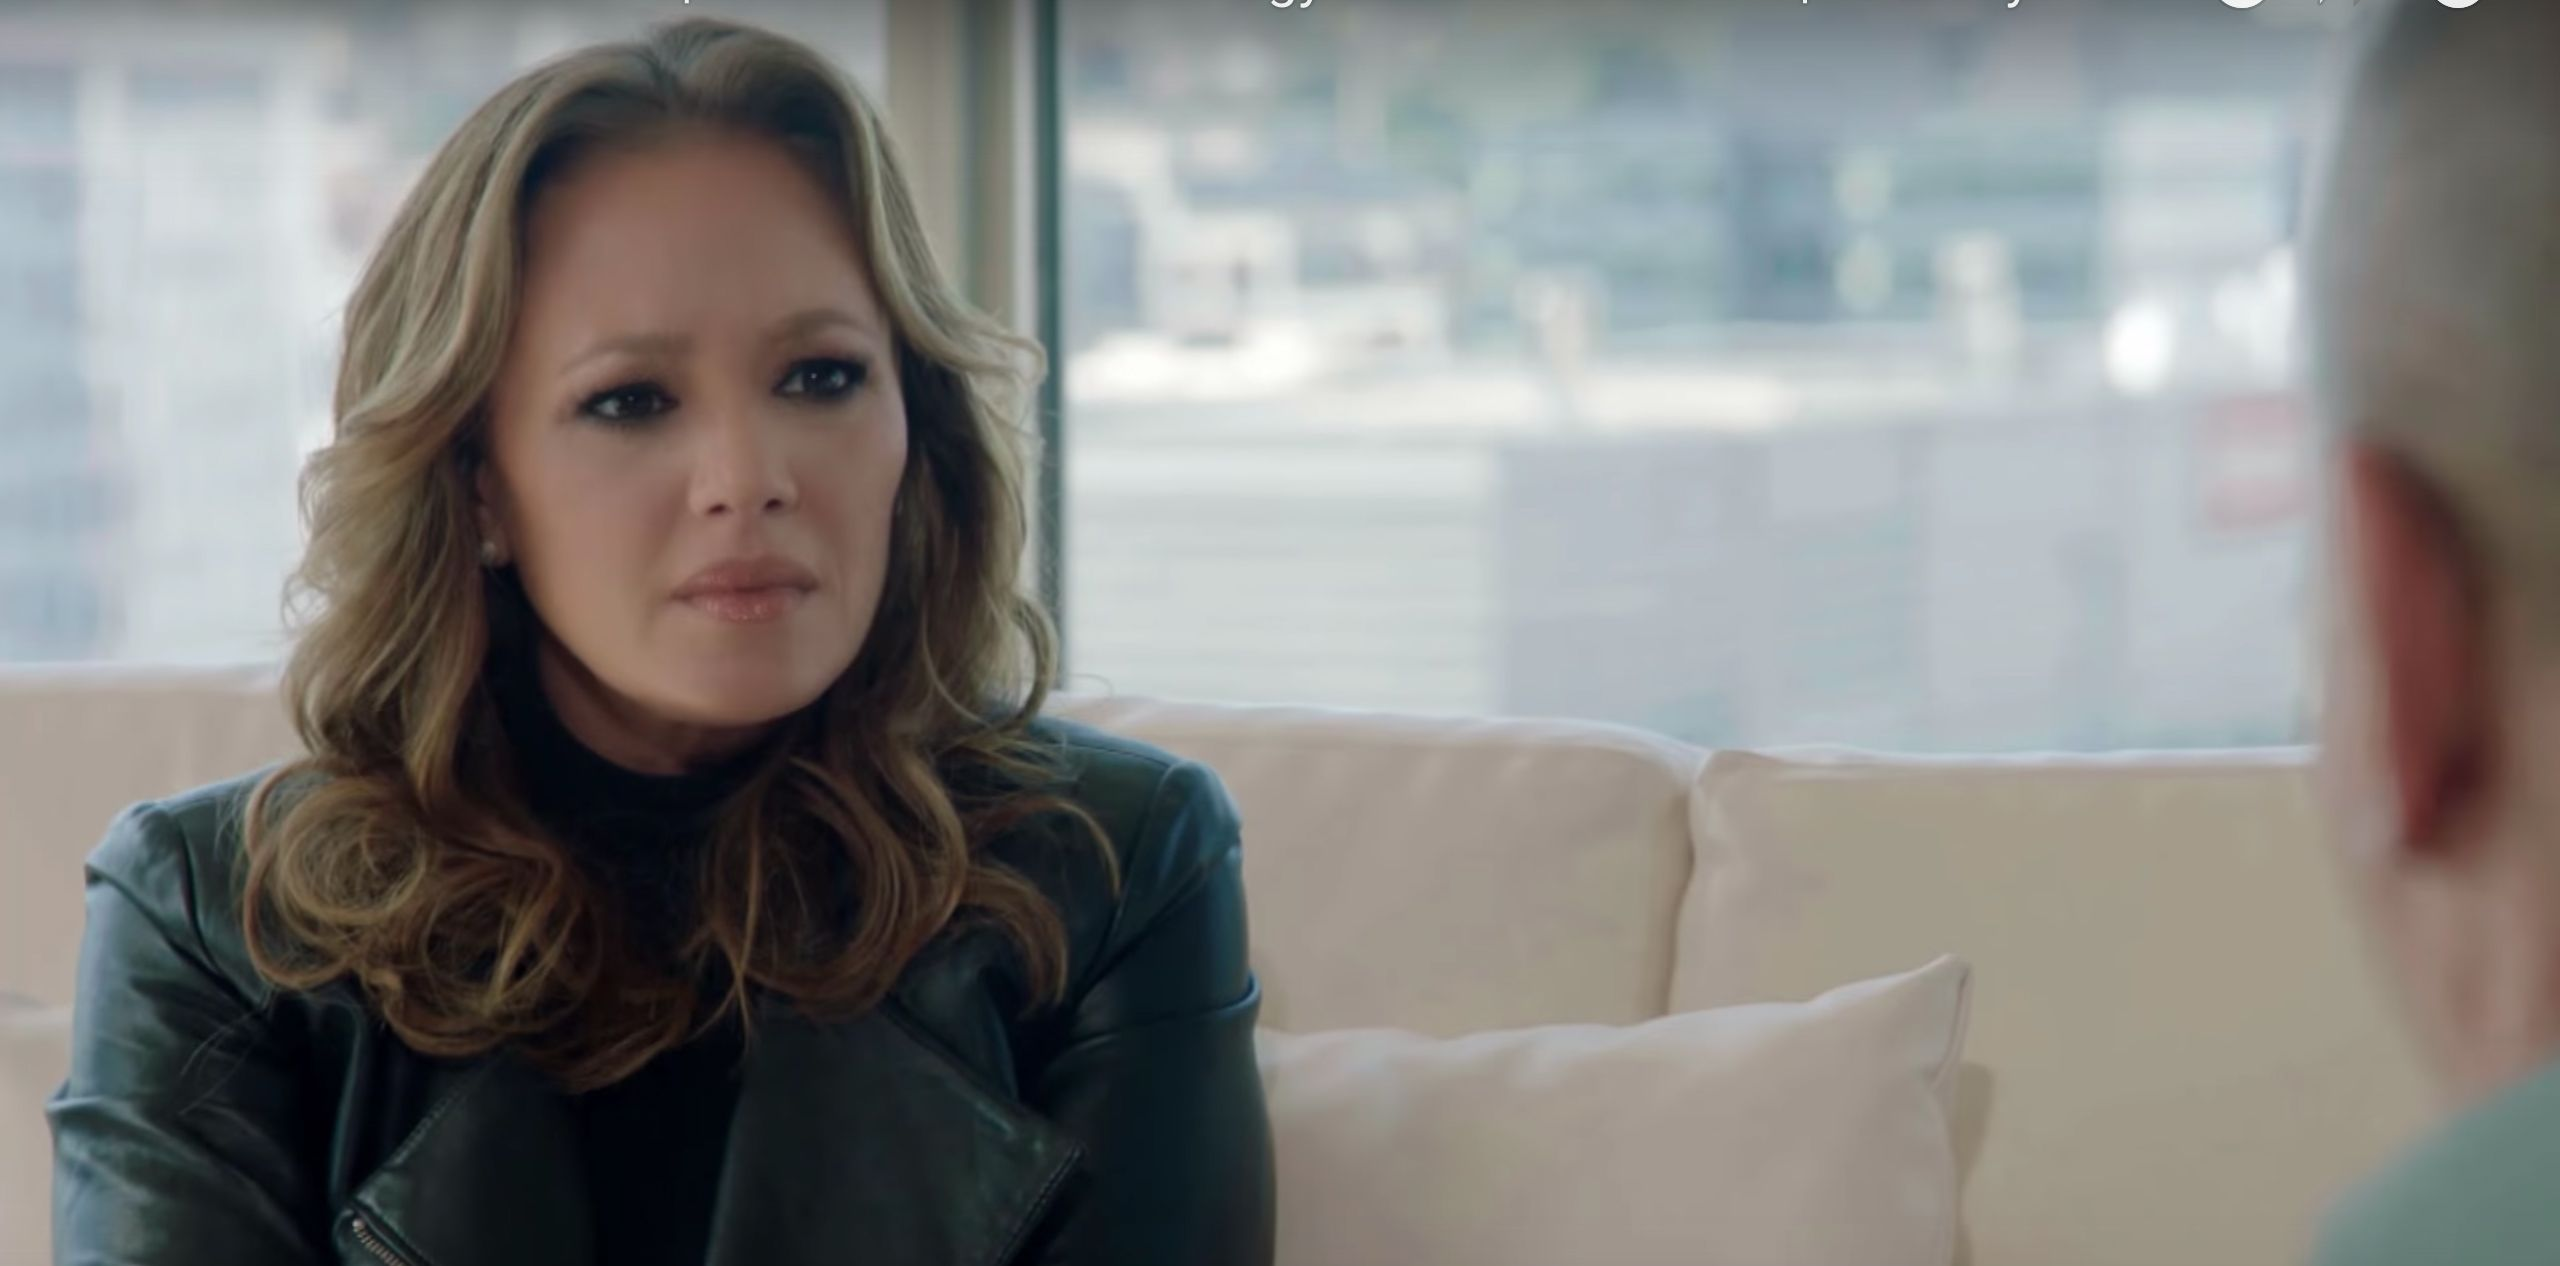 Leah mother reminis is who Leah Remini